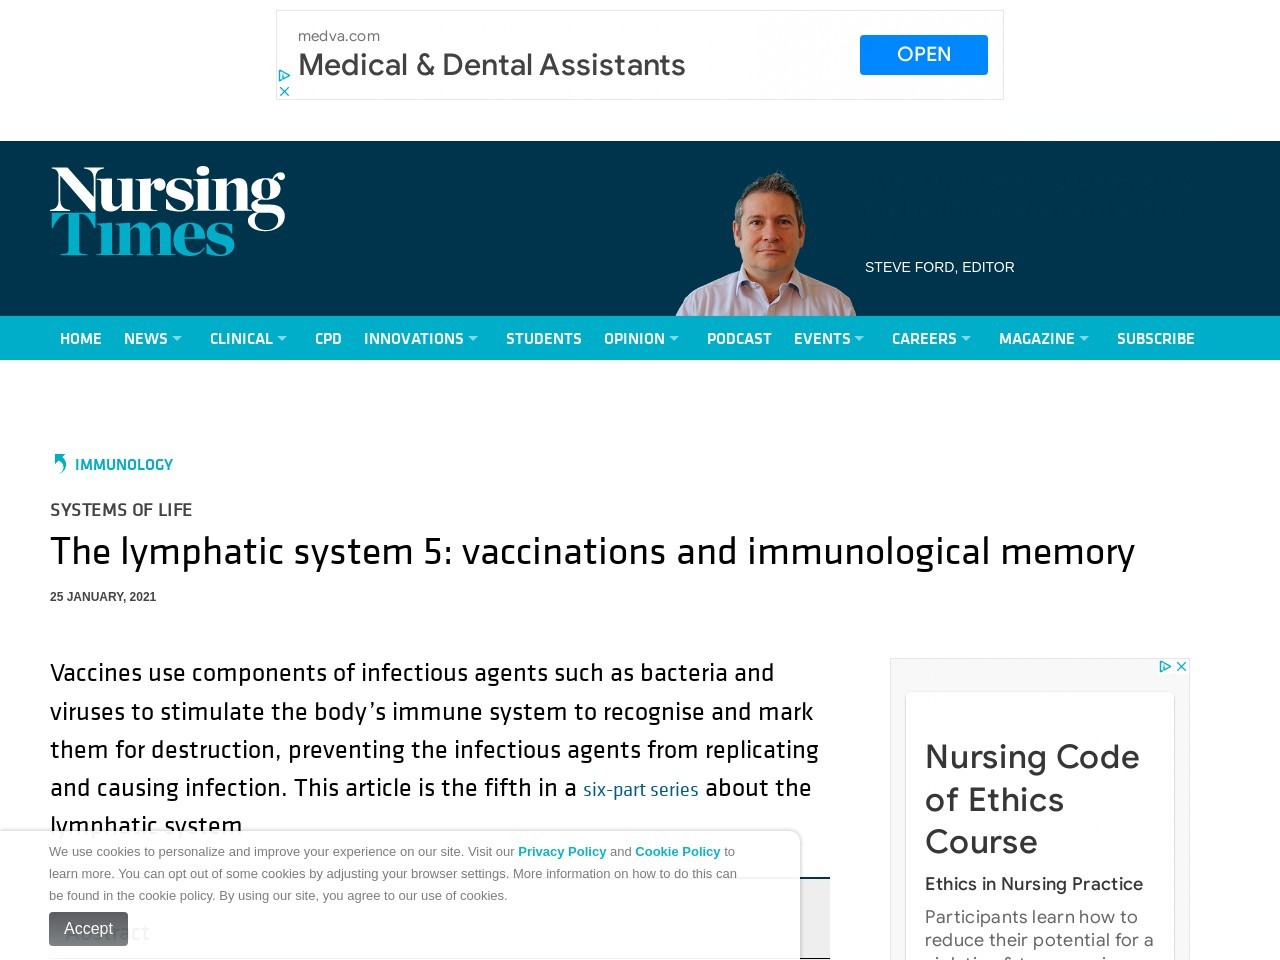 The lymphatic system 5: vaccinations and immunological memory